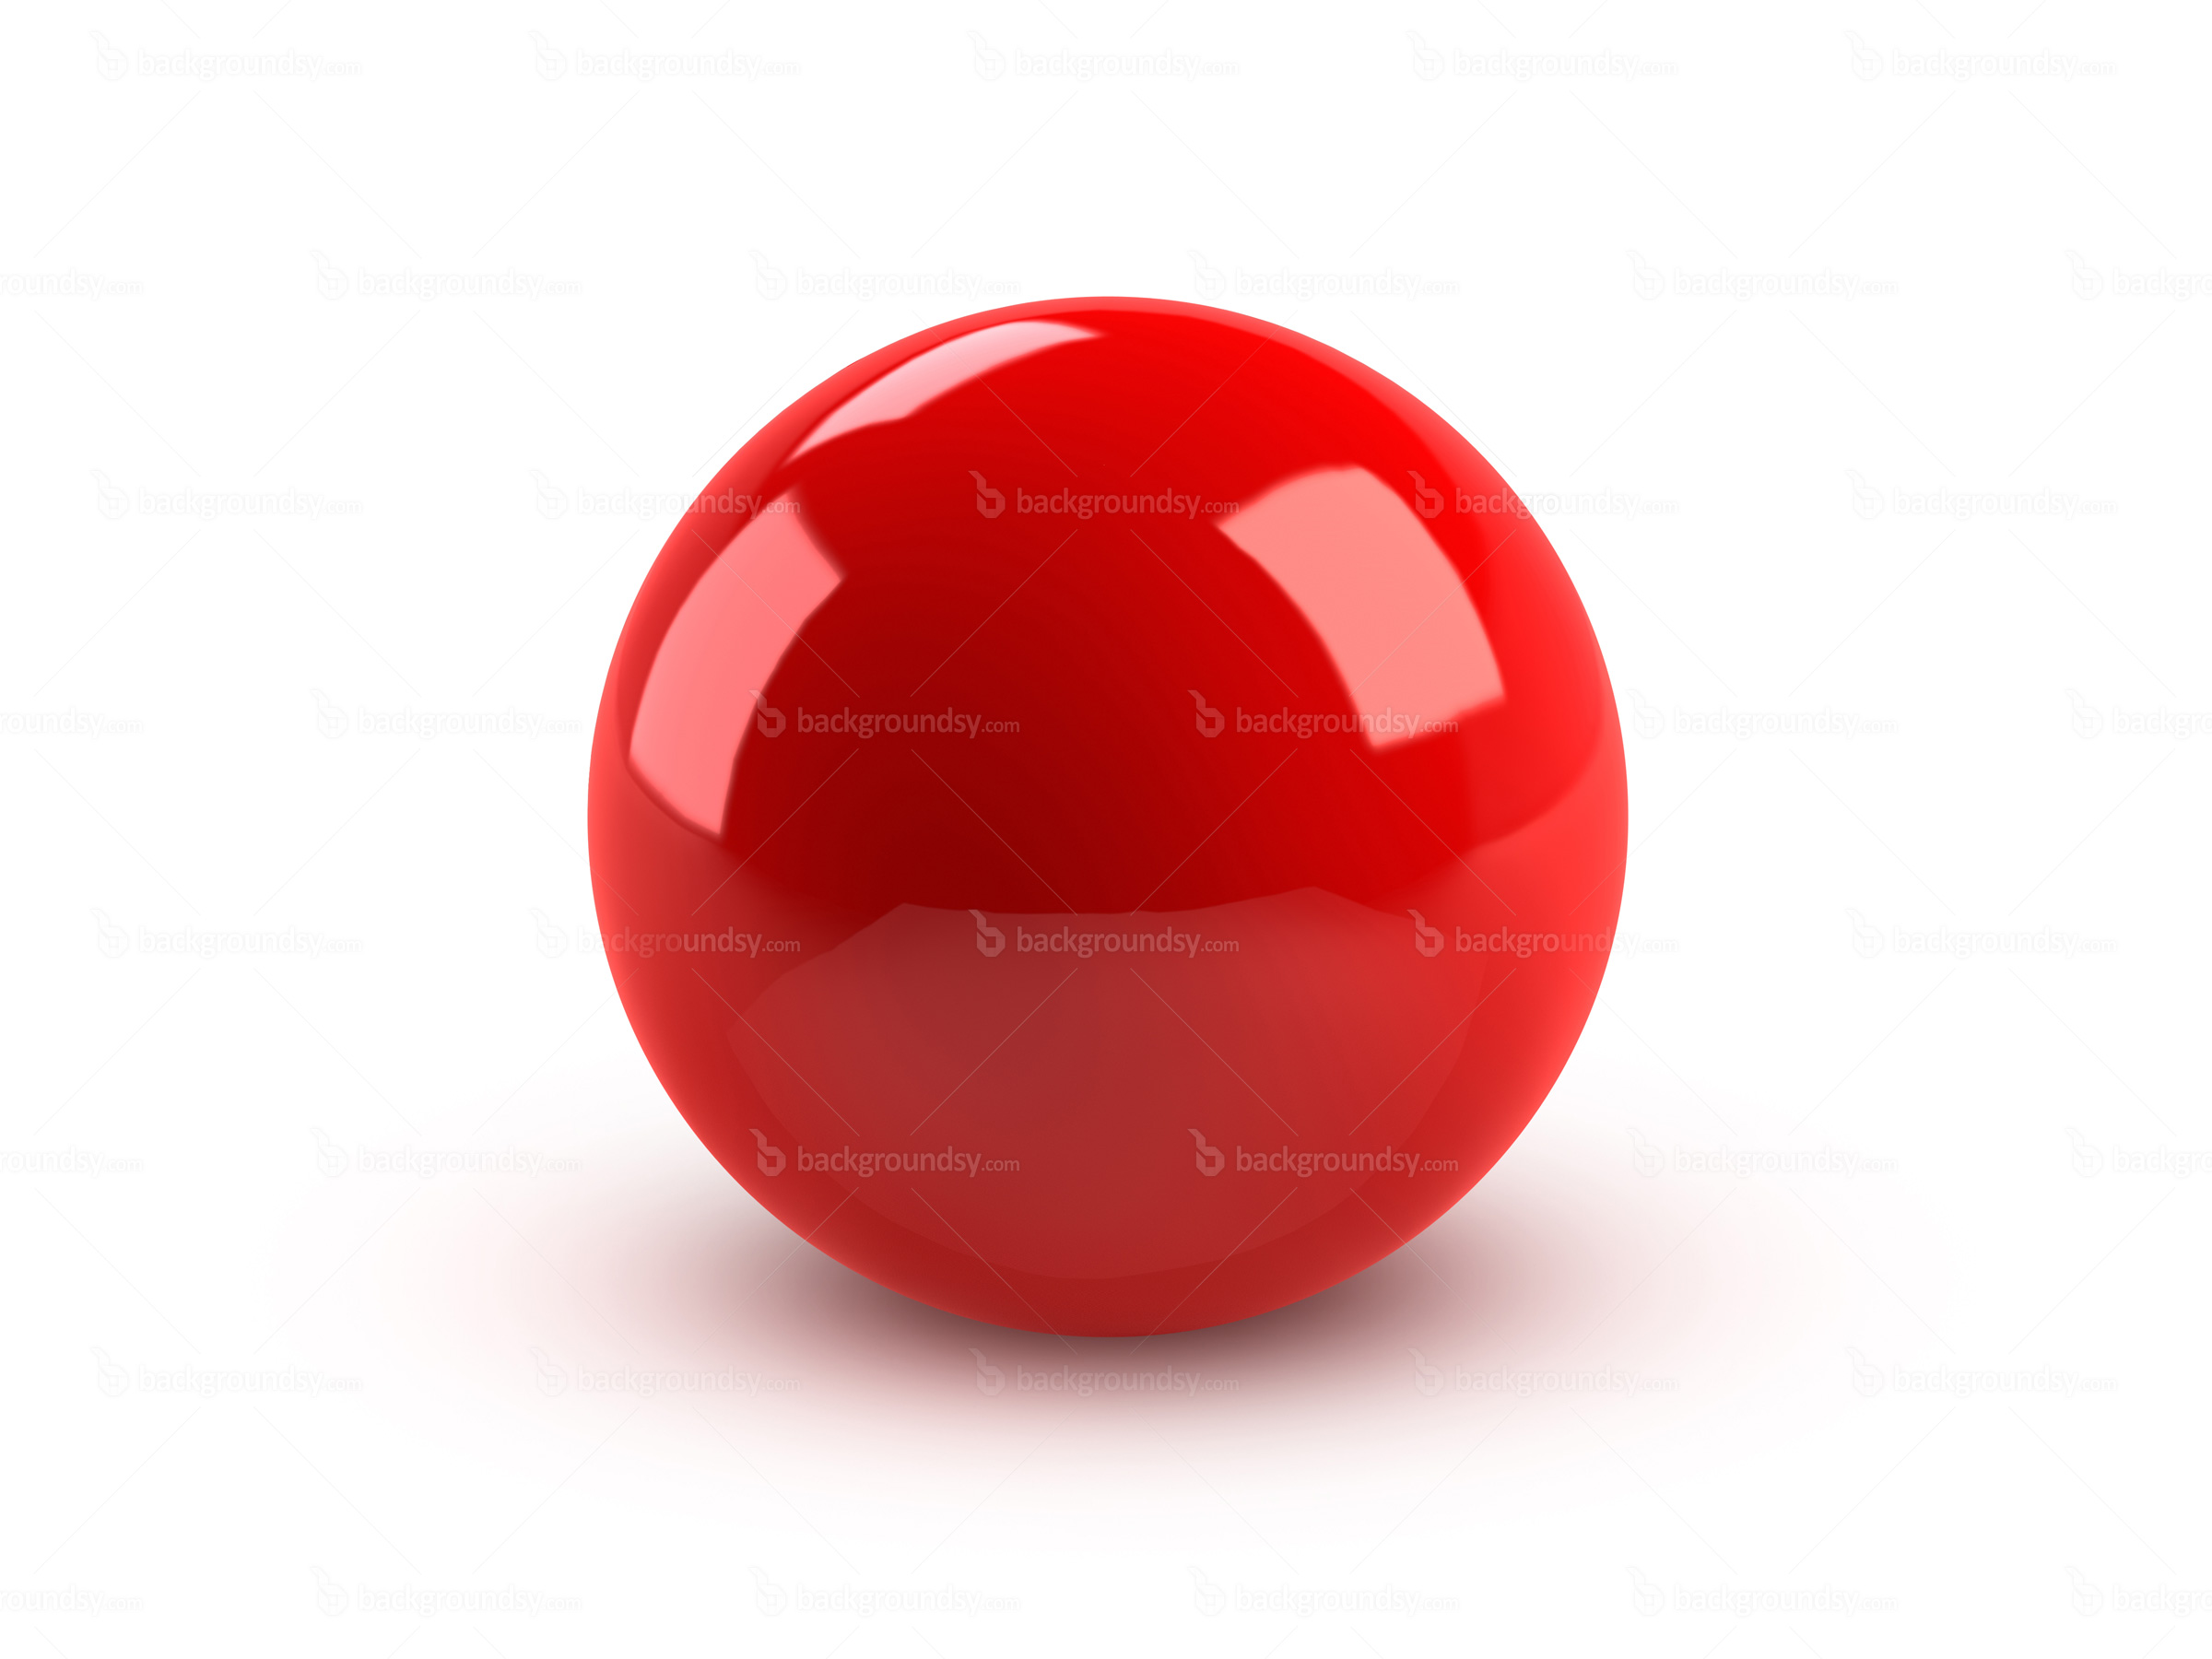 Sphere clipart red ball Backgroundsy eight isolated Pool ball